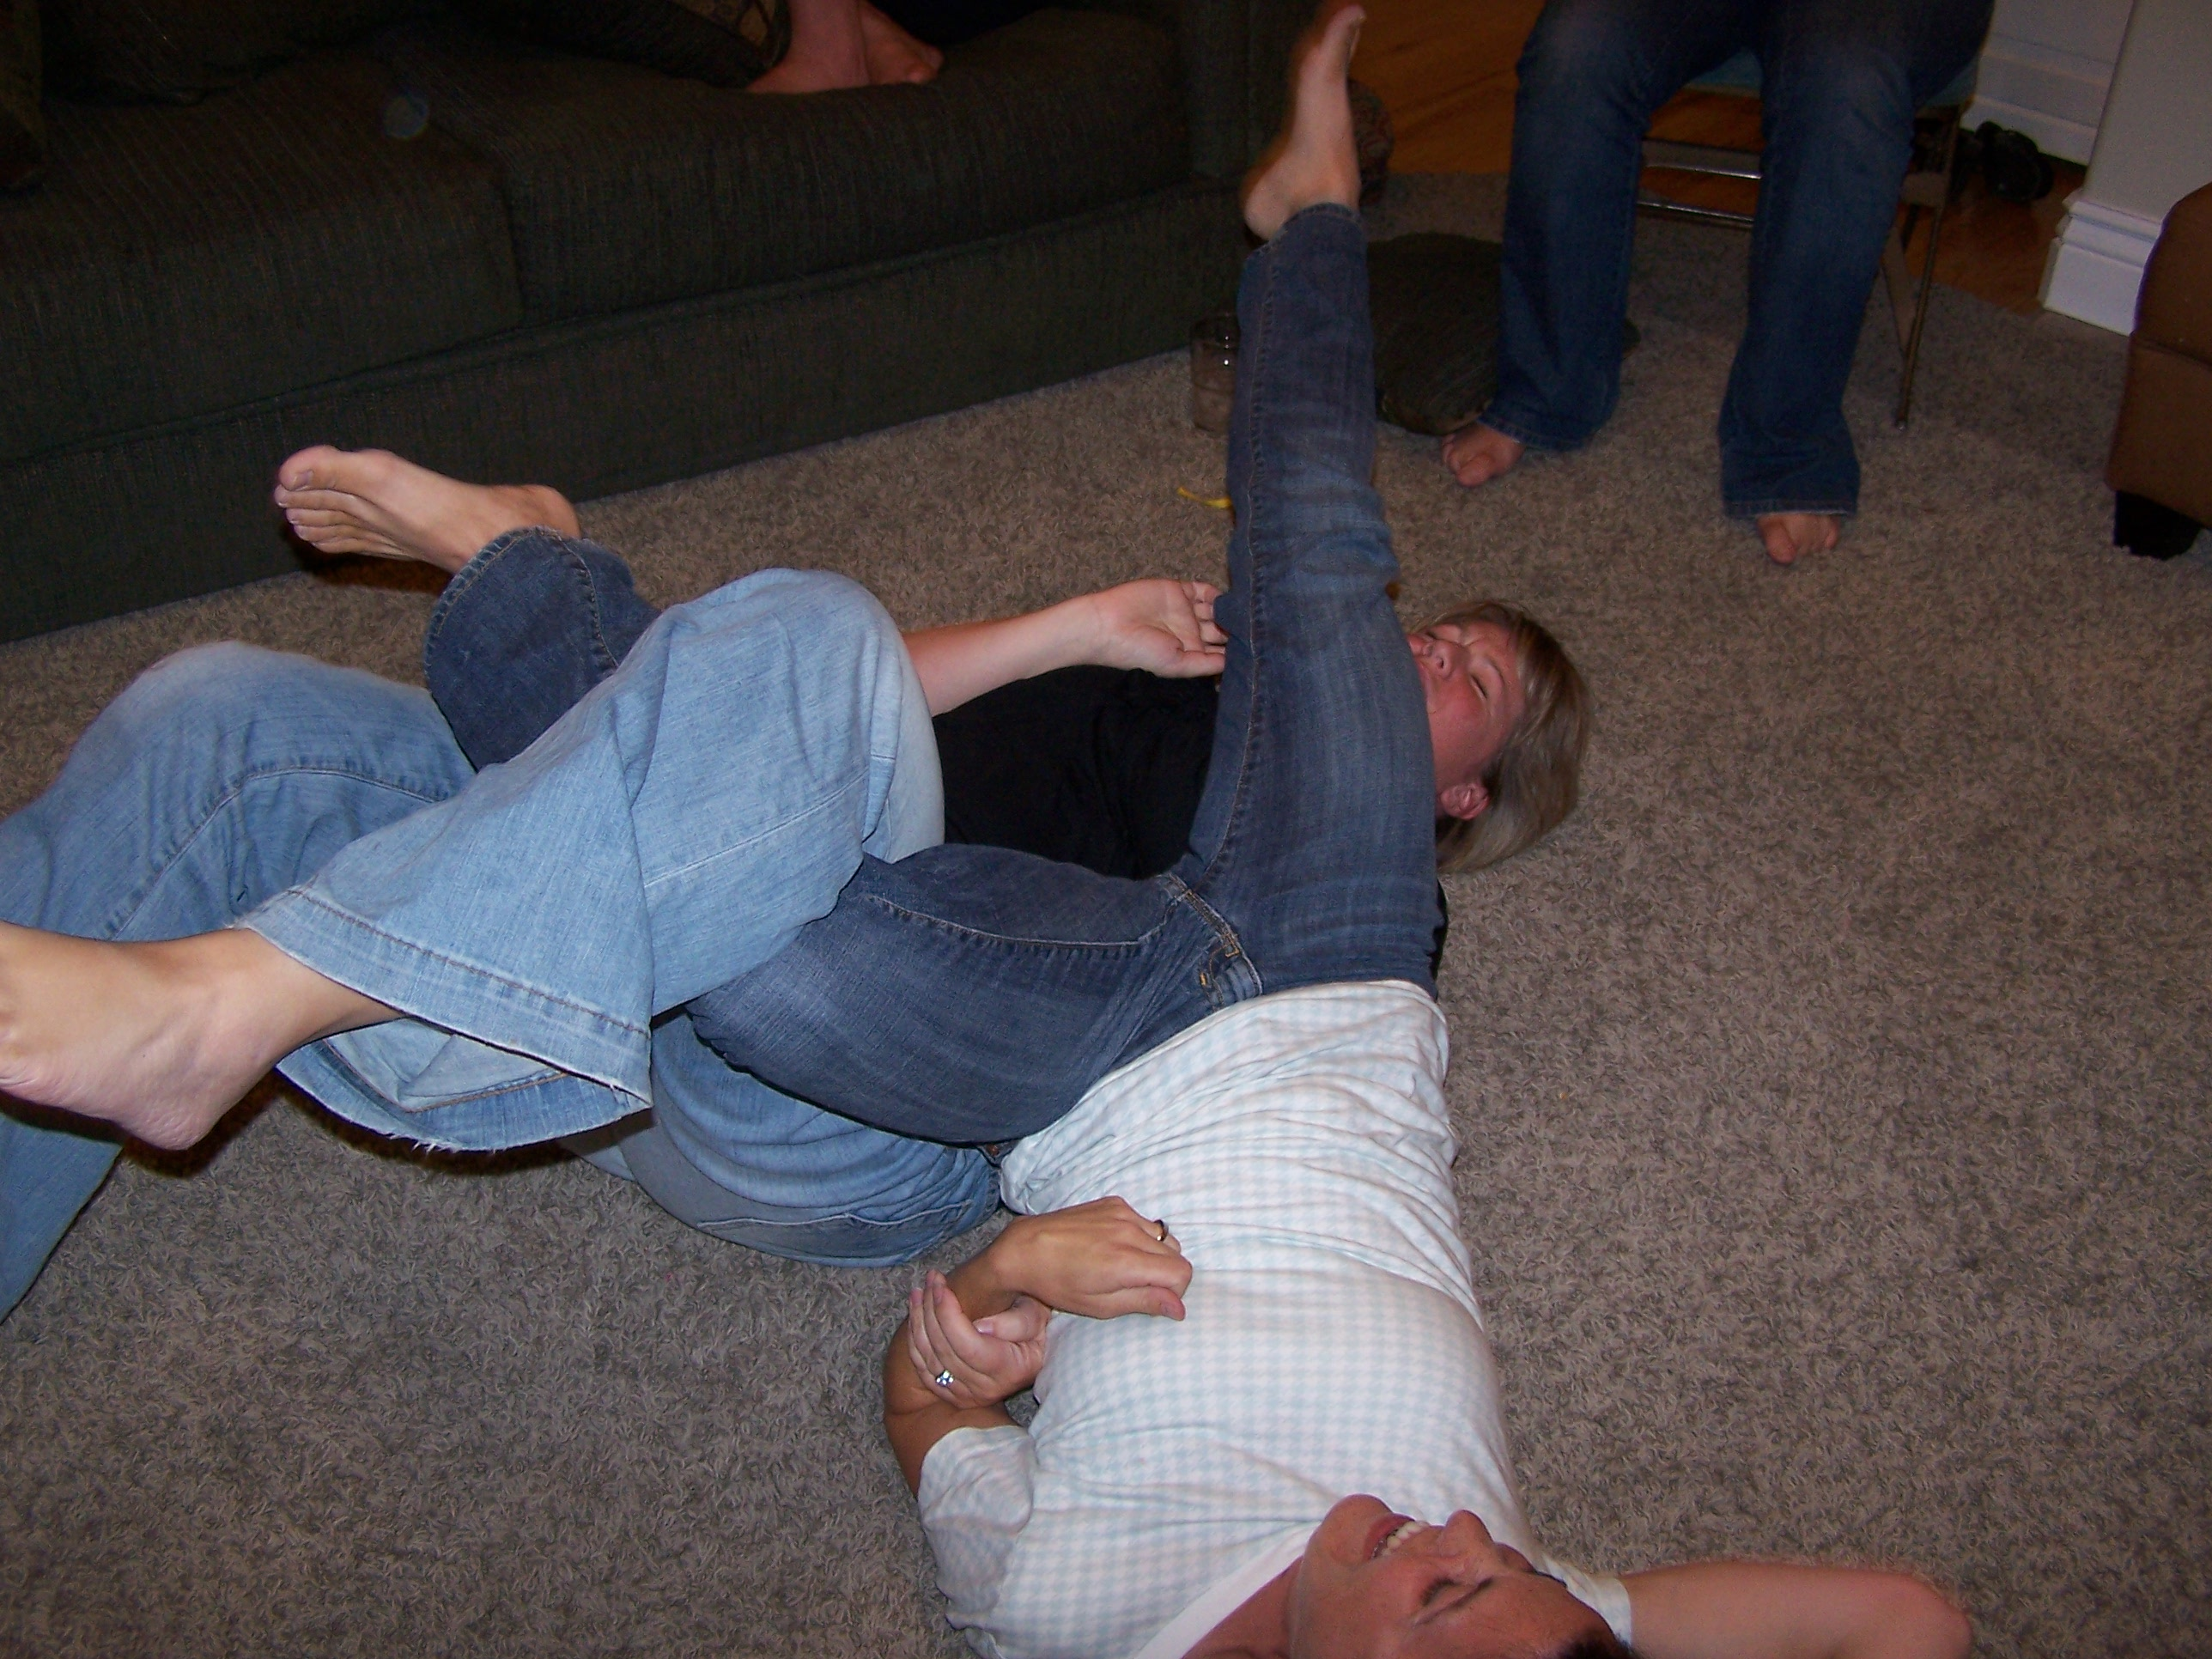 Yes, there was leg wrestling.